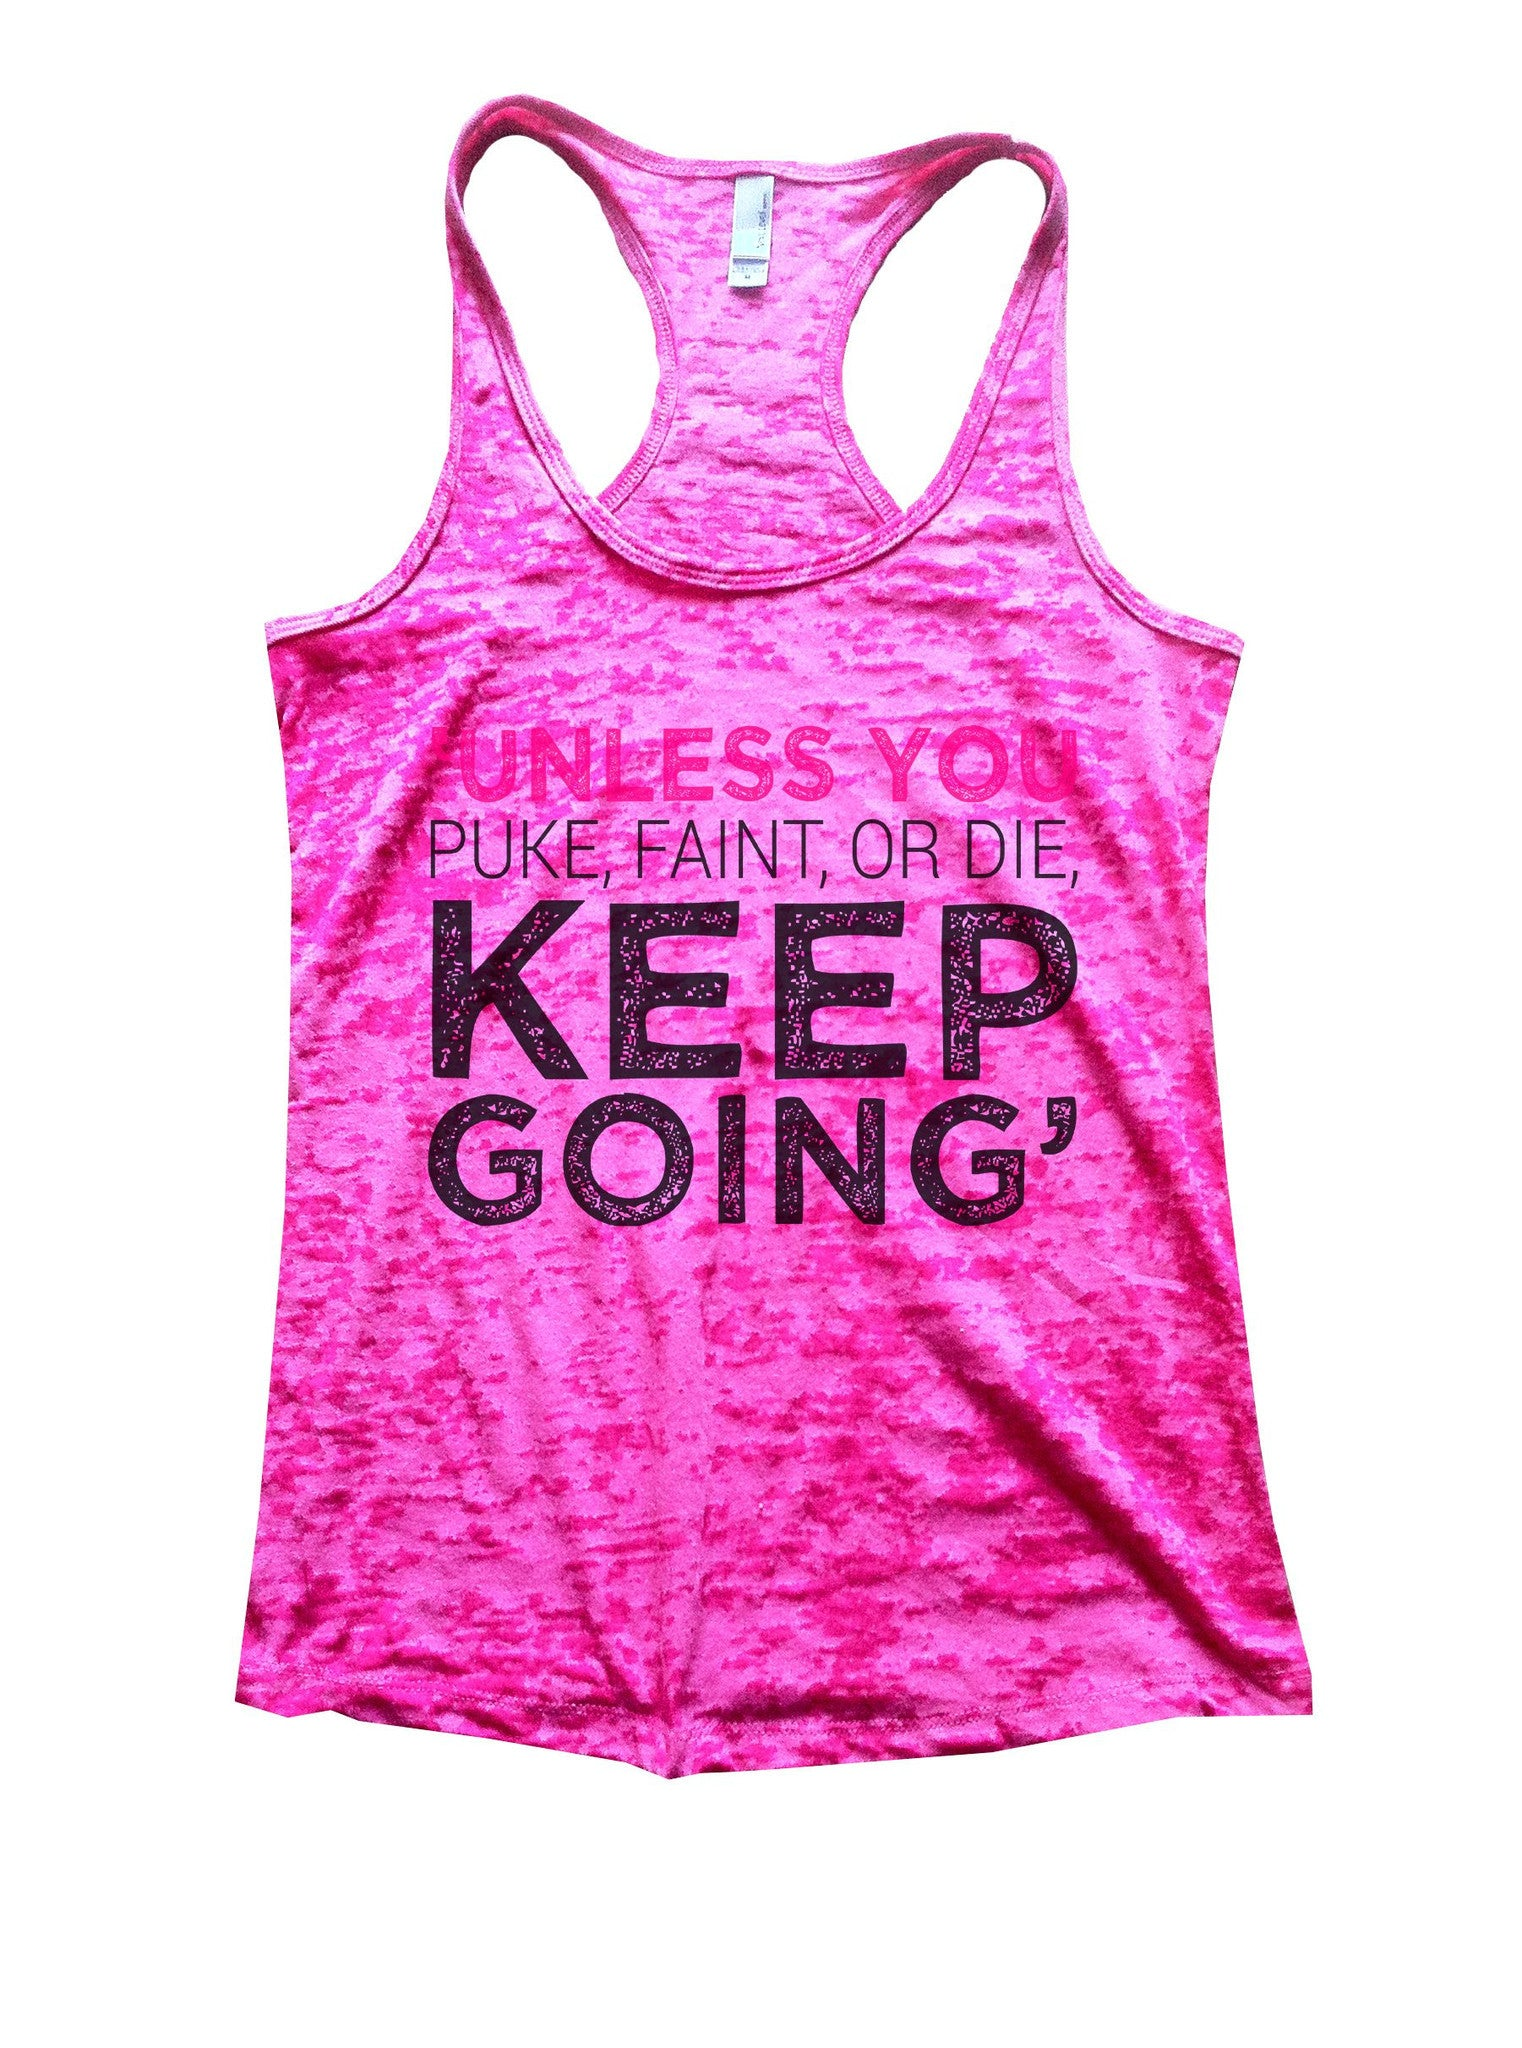 Unless You Puke, Faint, Or Die. Keep Going' Burnout Tank Top By BurnoutTankTops.com - 1104 - Funny Shirts Tank Tops Burnouts and Triblends  - 5